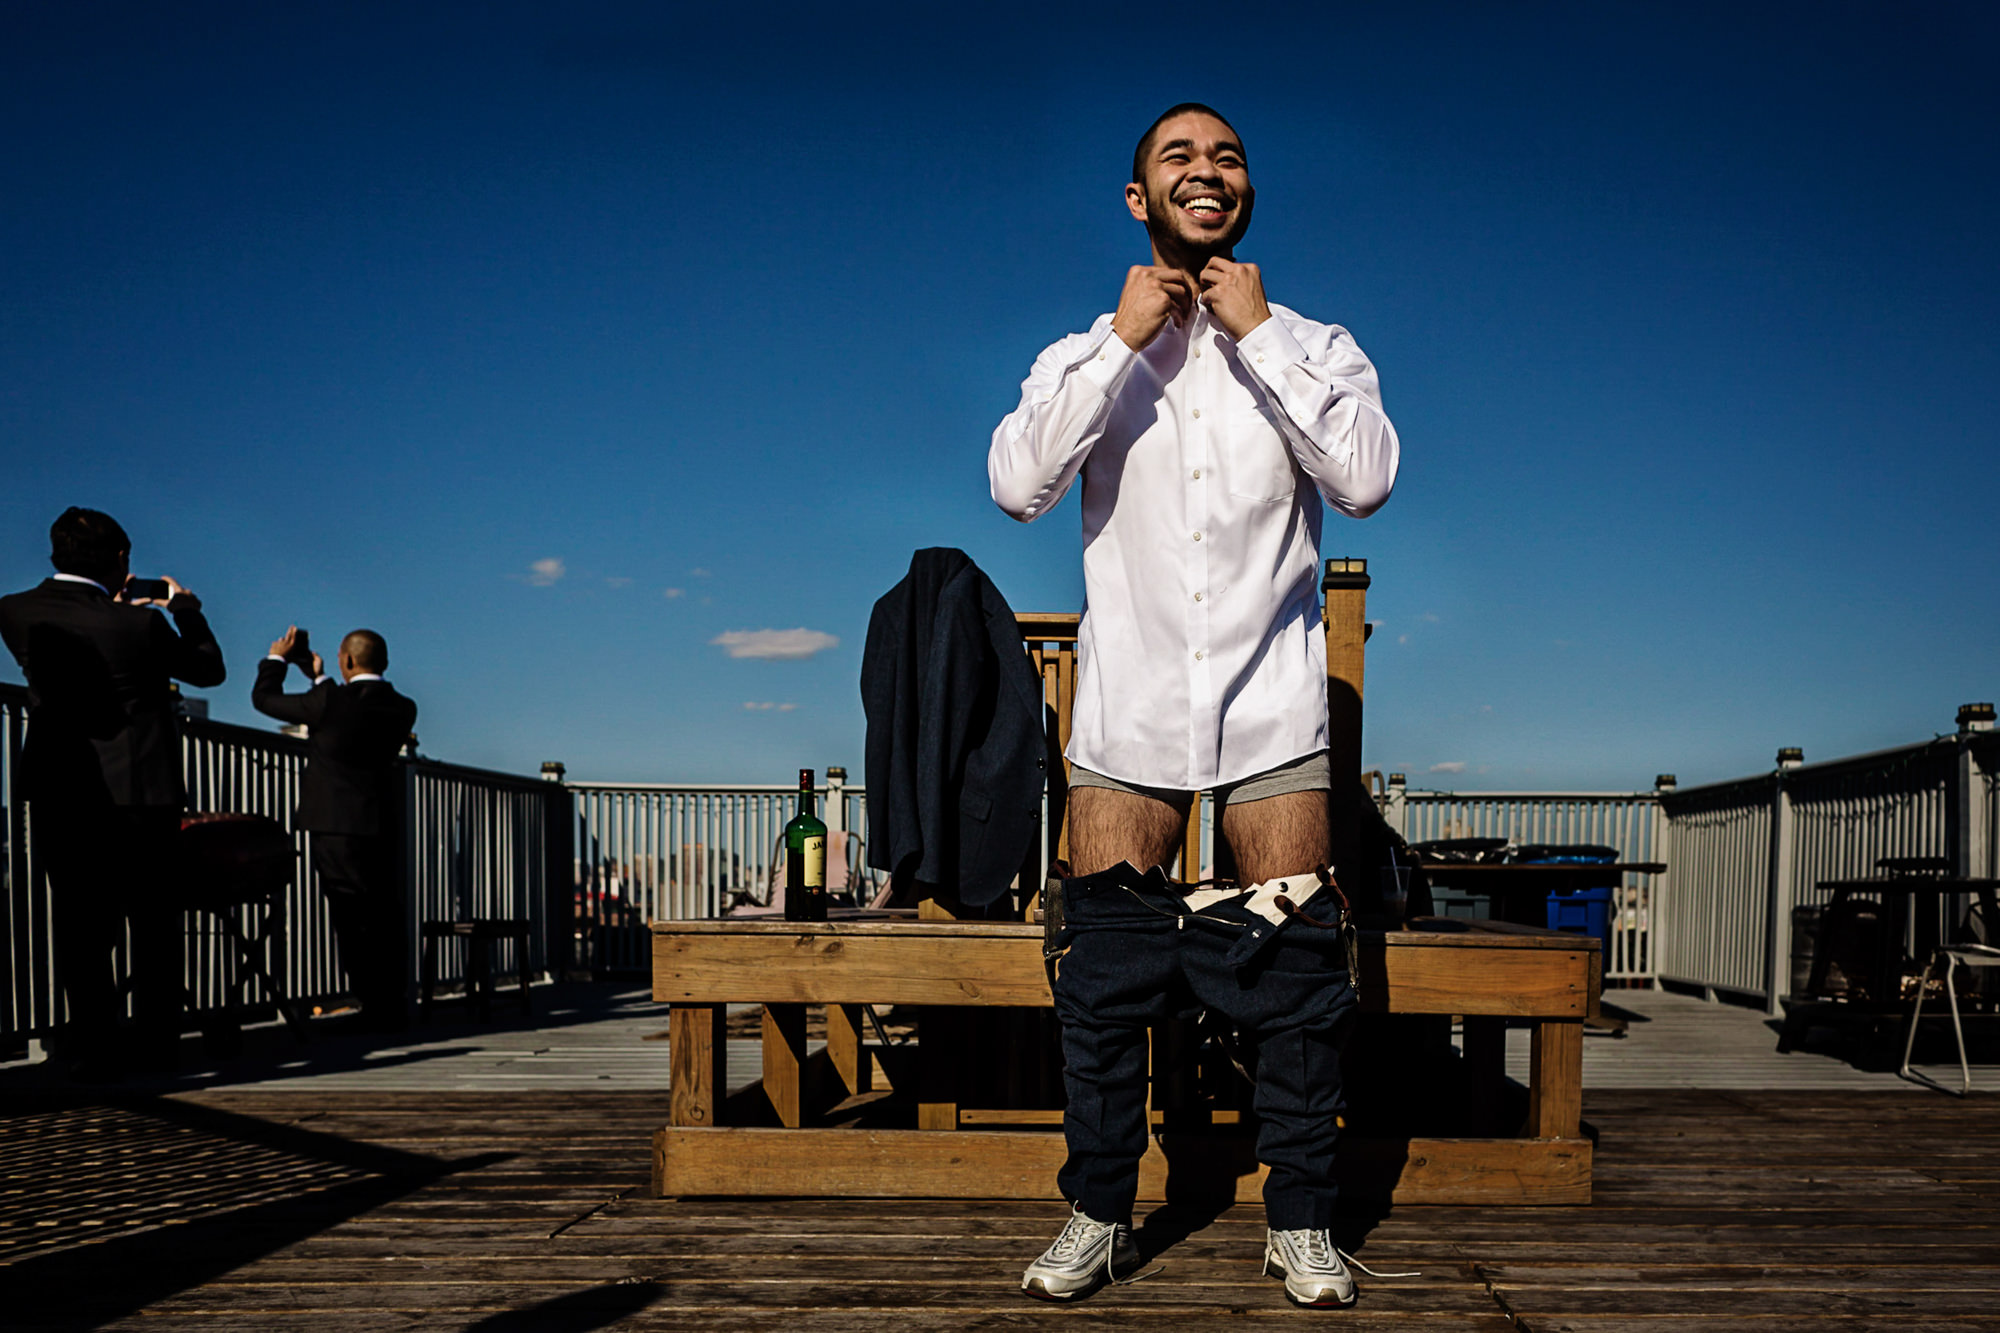 funny-groom-in-stages-of-dress-at-rooftop-worlds-best-wedding-photos-jag-studios-connecticut-wedding-photographers